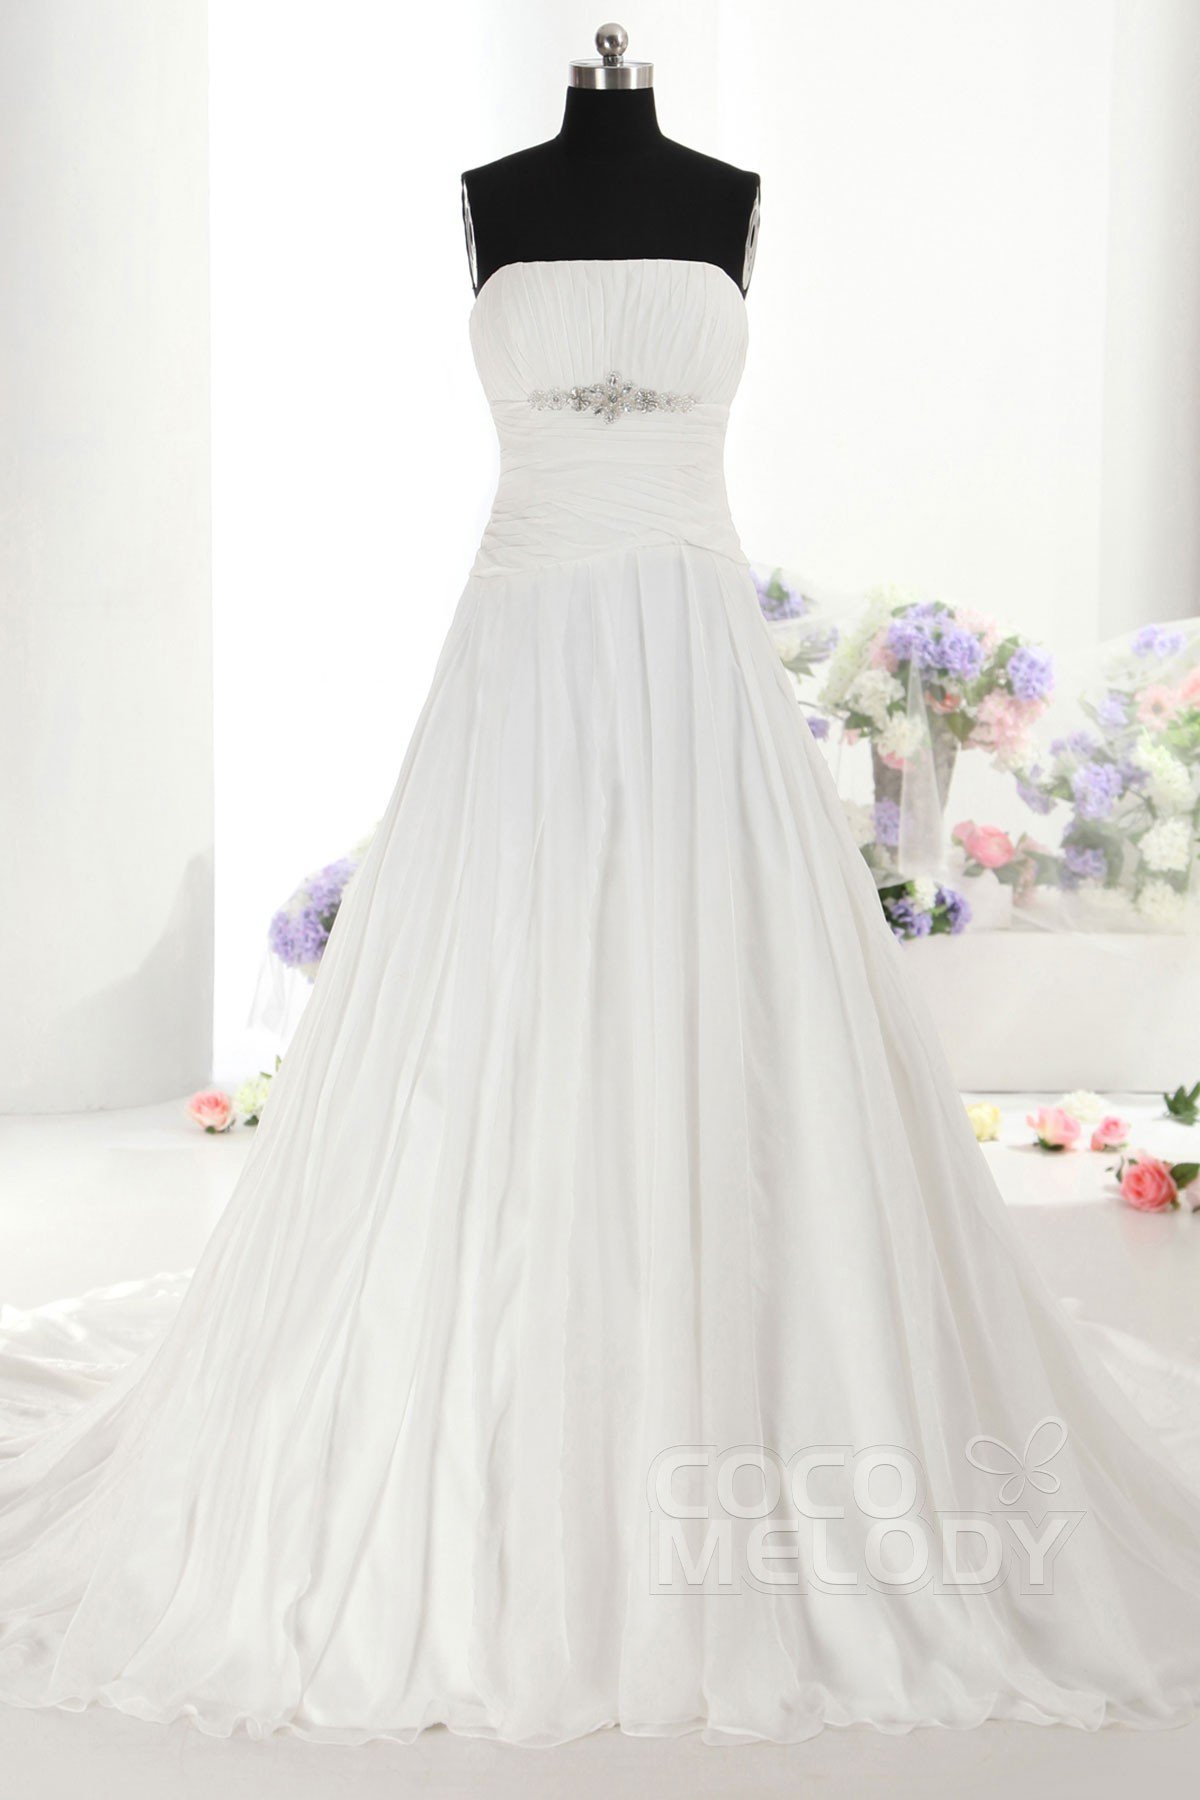 Divine A-Line Strapless Natural Train Chiffon Ivory Sleeveless Zipper Wedding Dress with Beading h7ao0013